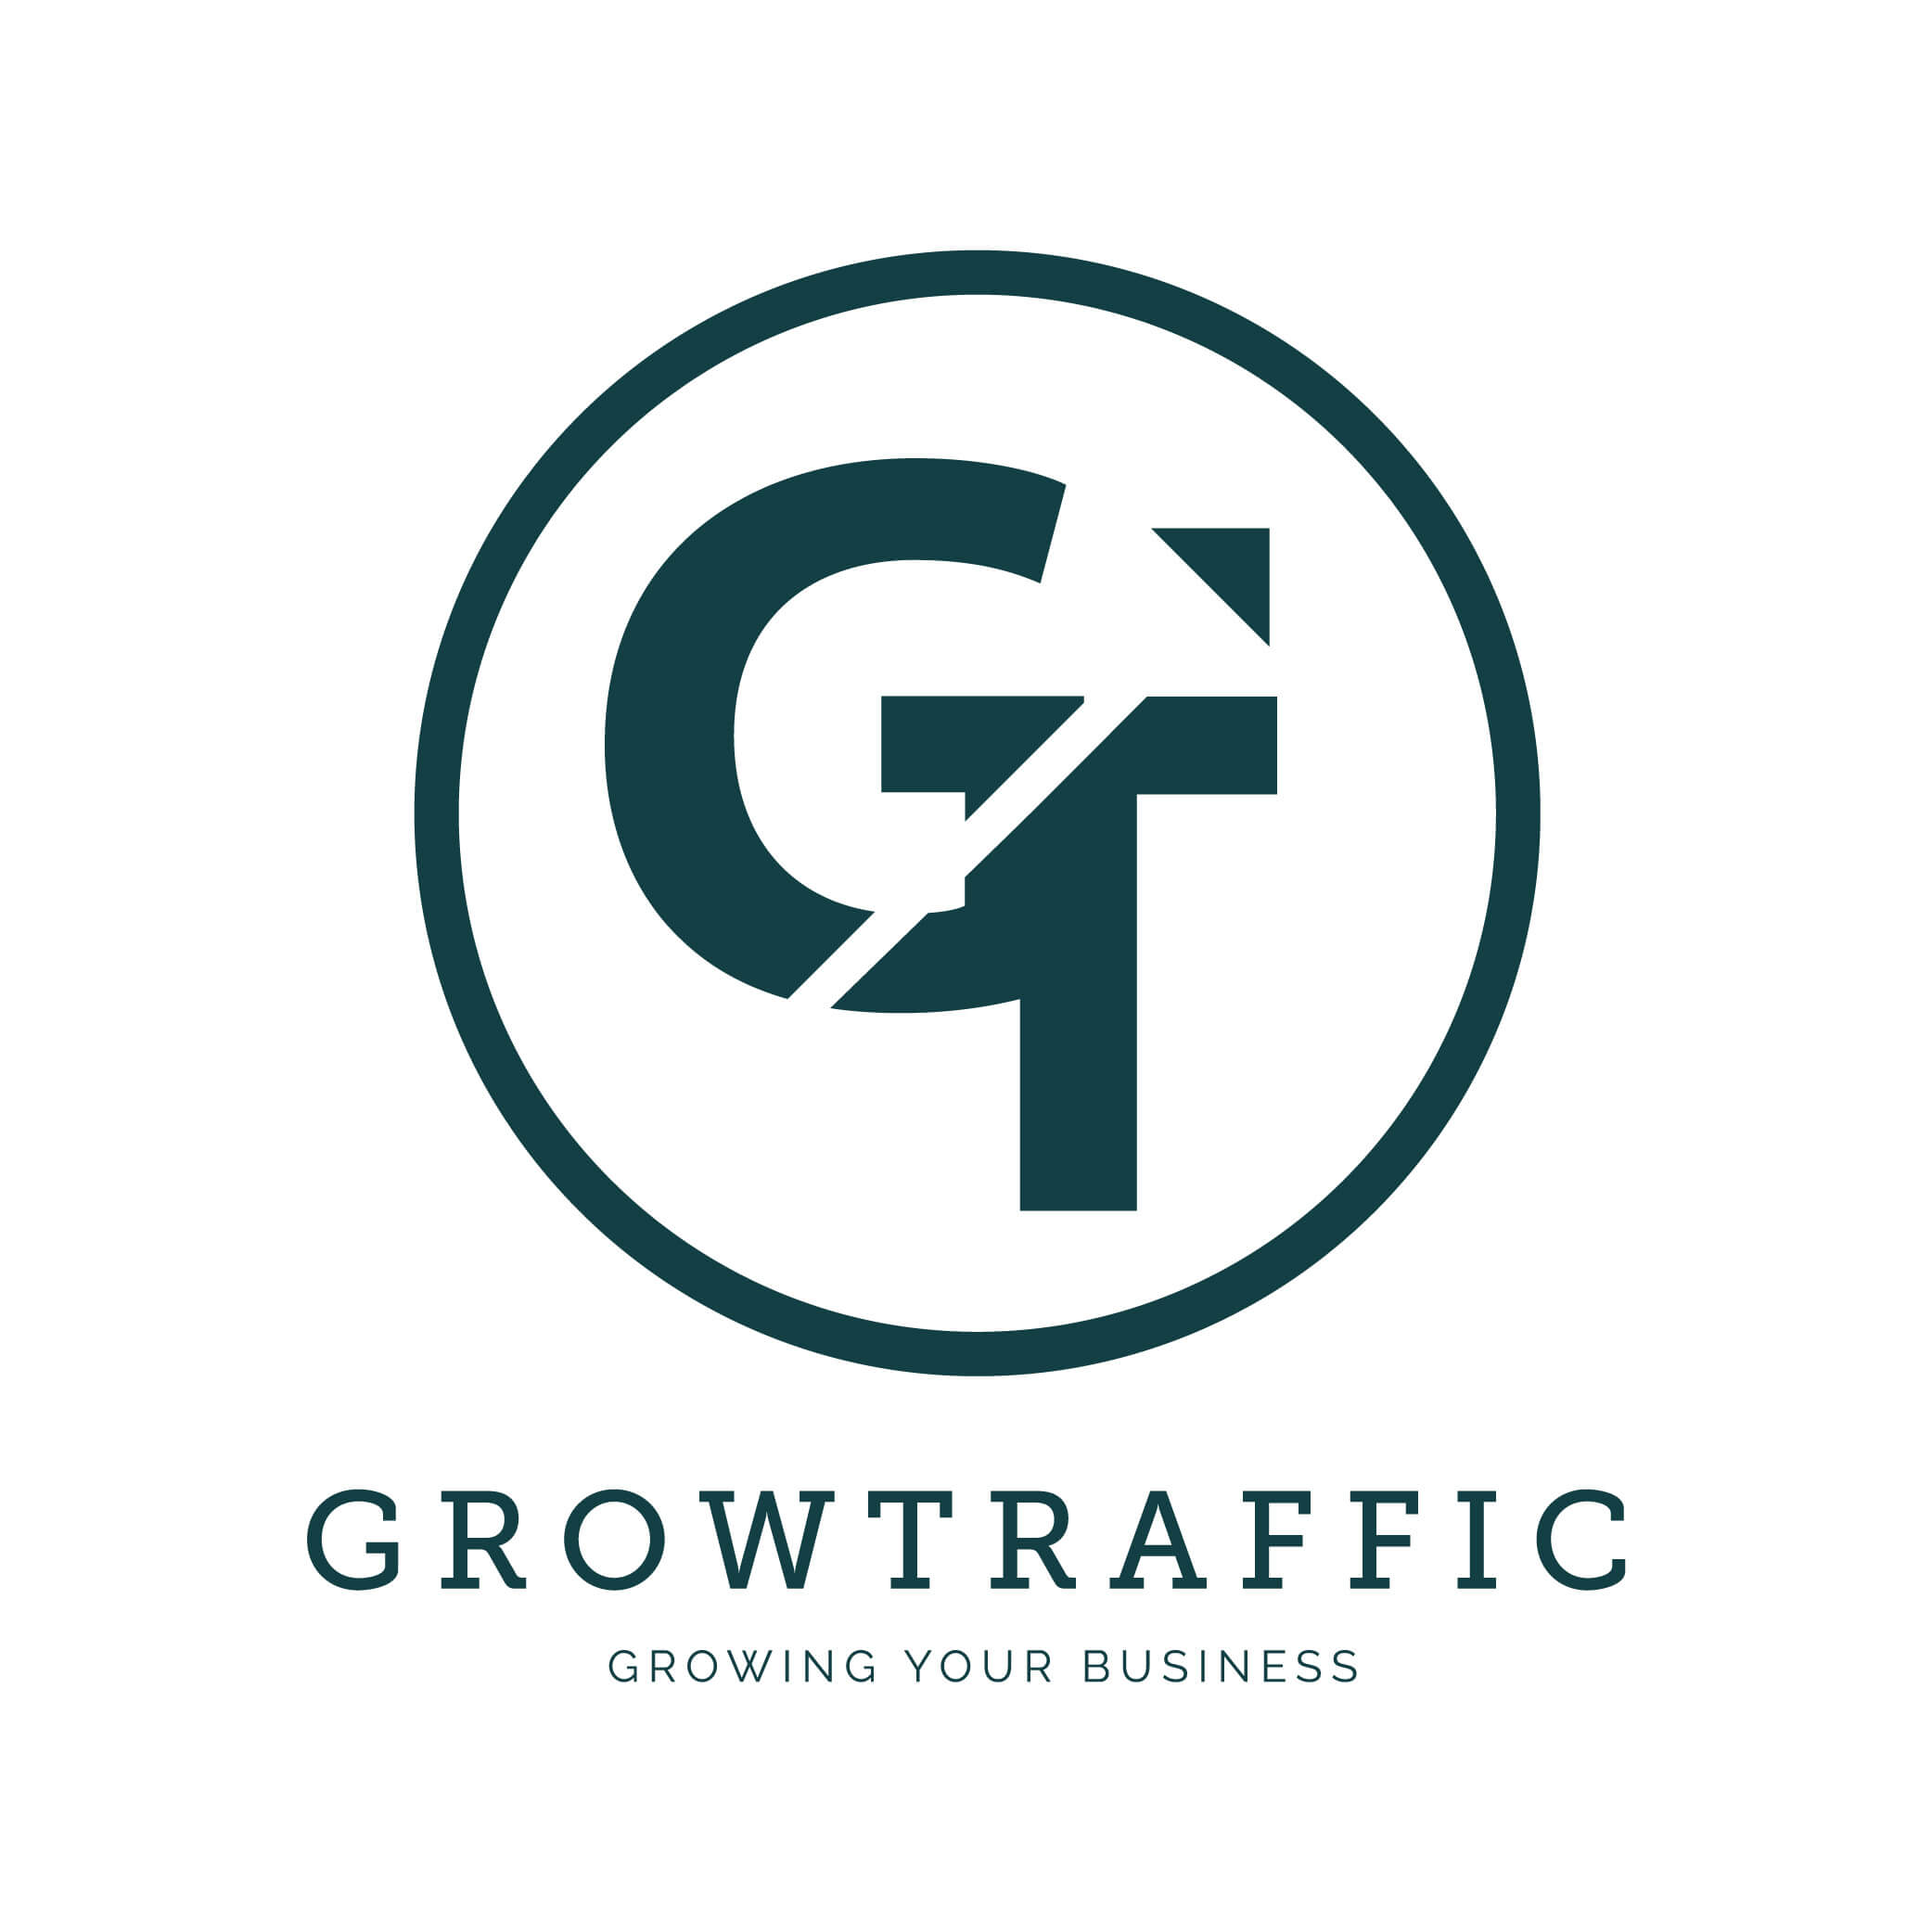 GrowTraffic